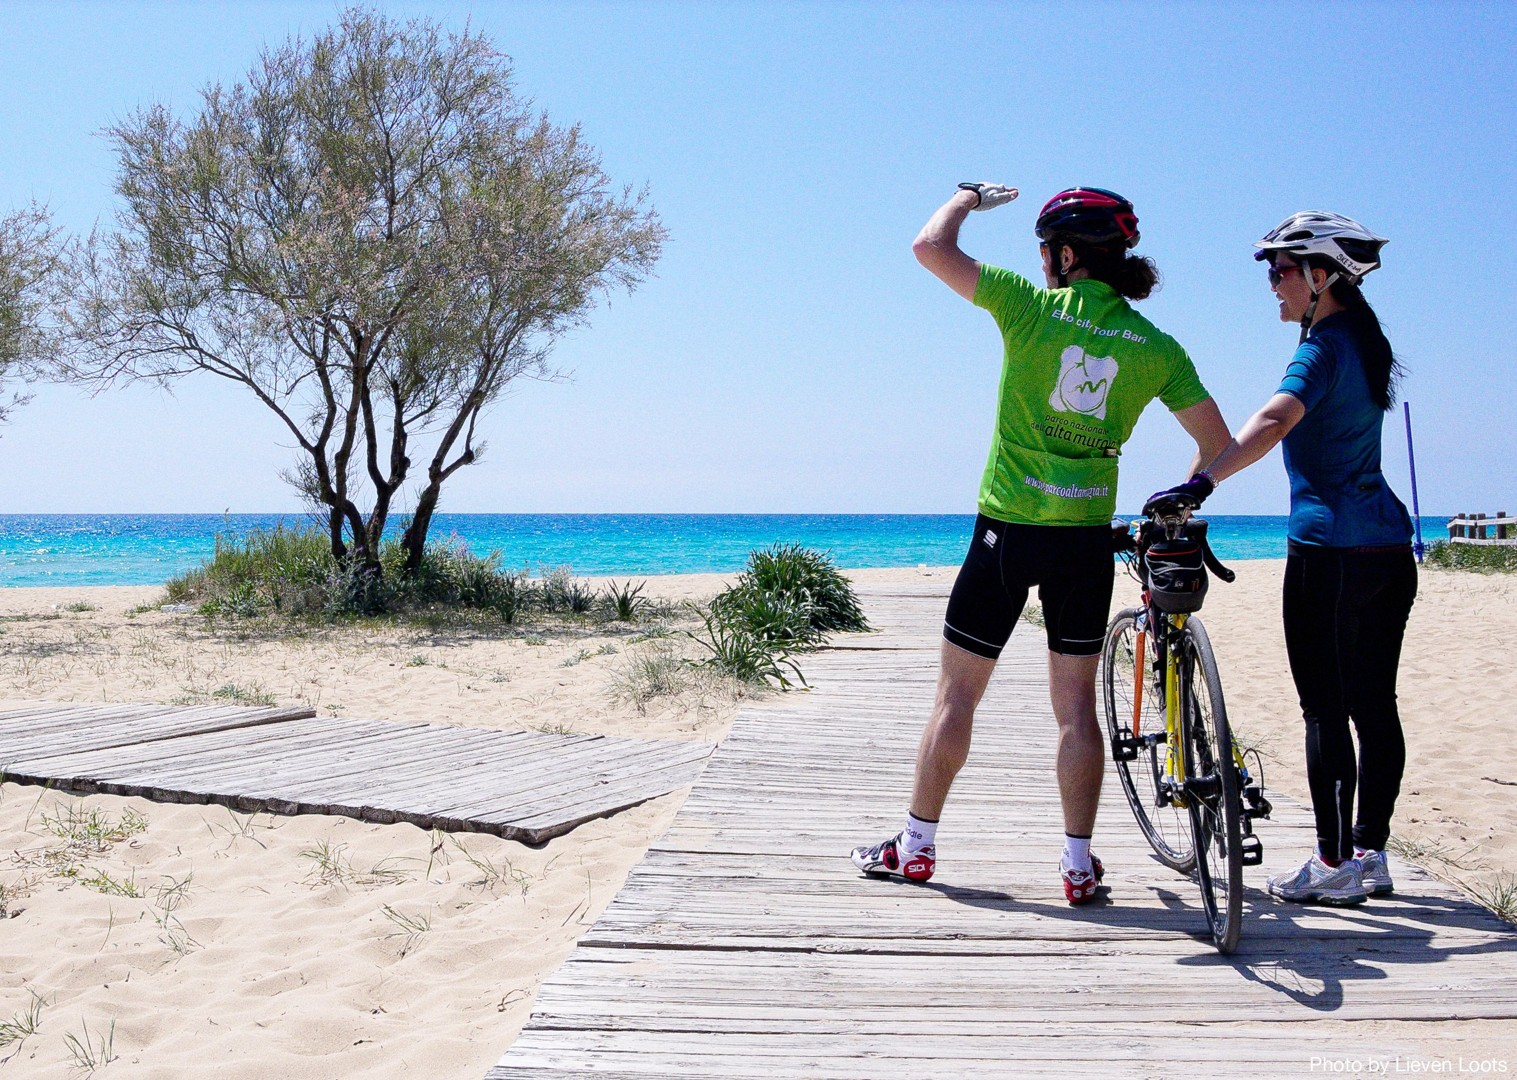 coastal-views-puglia-group-guided-cycling-holiday.jpg - Italy - Puglia - The Heel of Italy - Guided Road Cycling Holiday - Italia Road Cycling